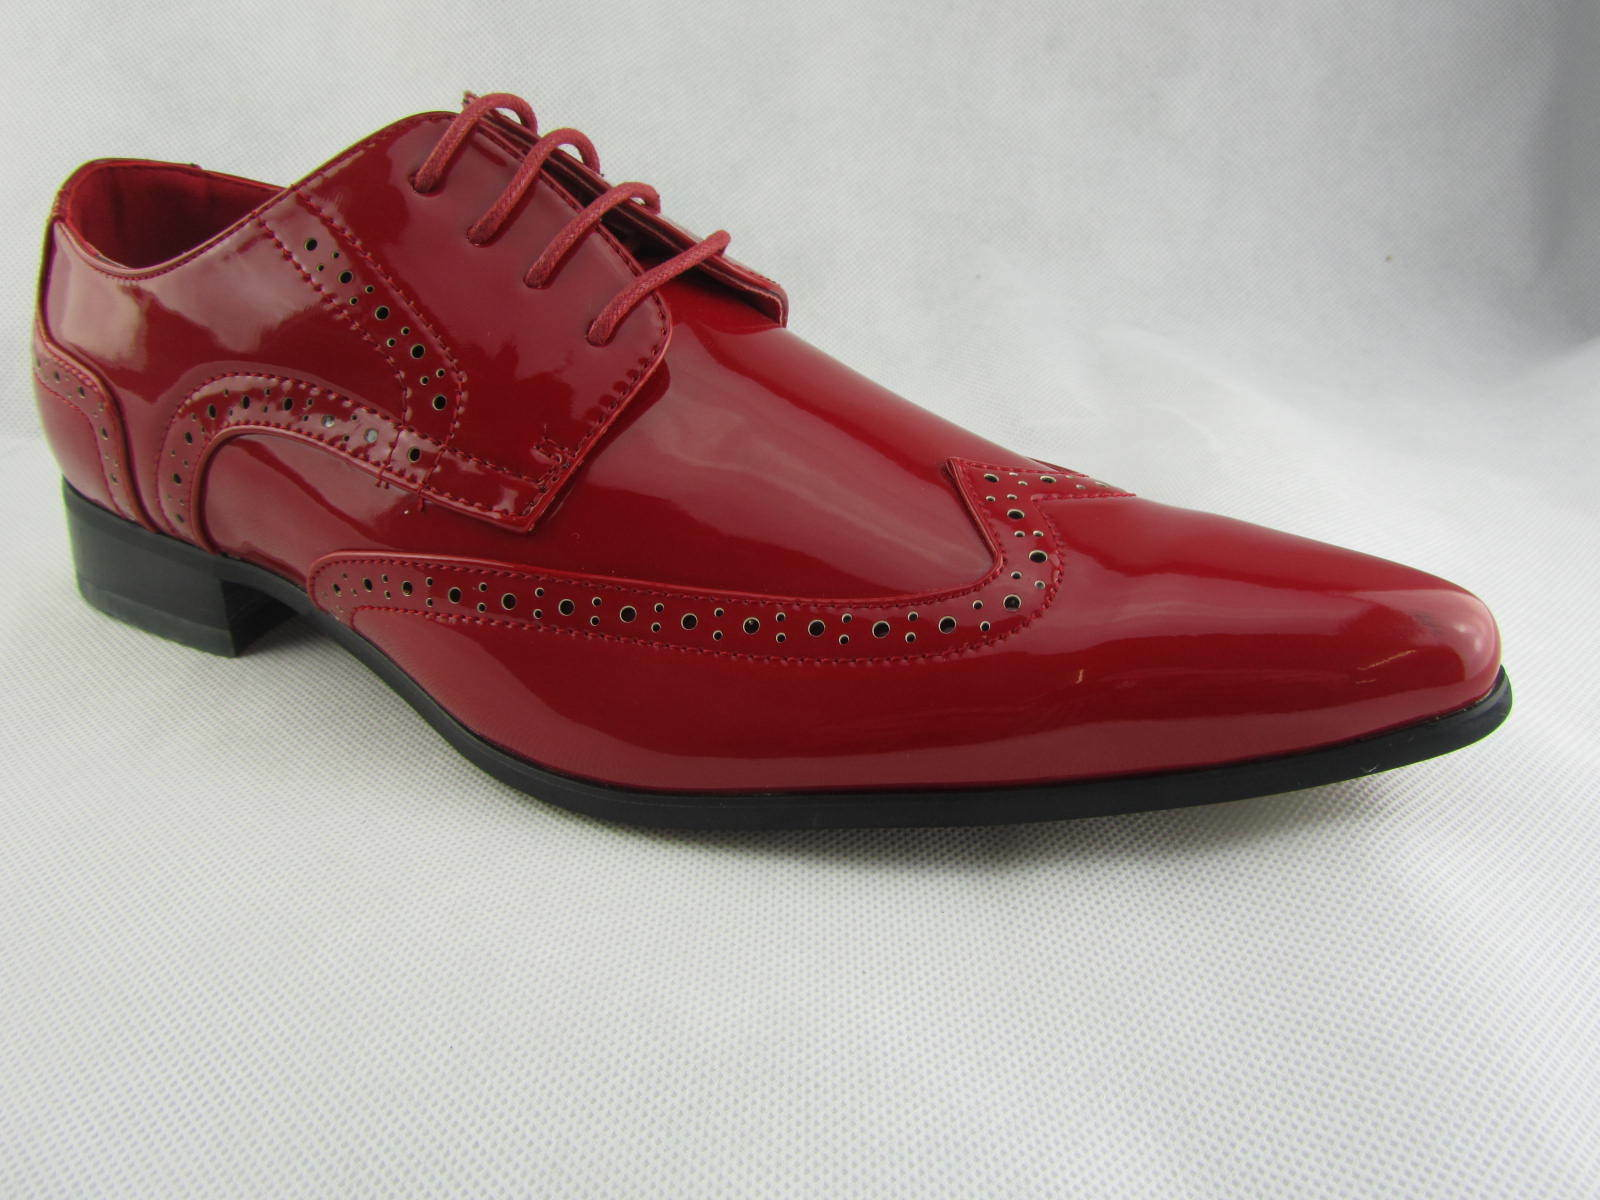 Rossellini Rossellini Rossellini Prato Z2 Hombre Zapatos Lace Up Brogue Rojo Patent Pointed Casual Zapatos 817723